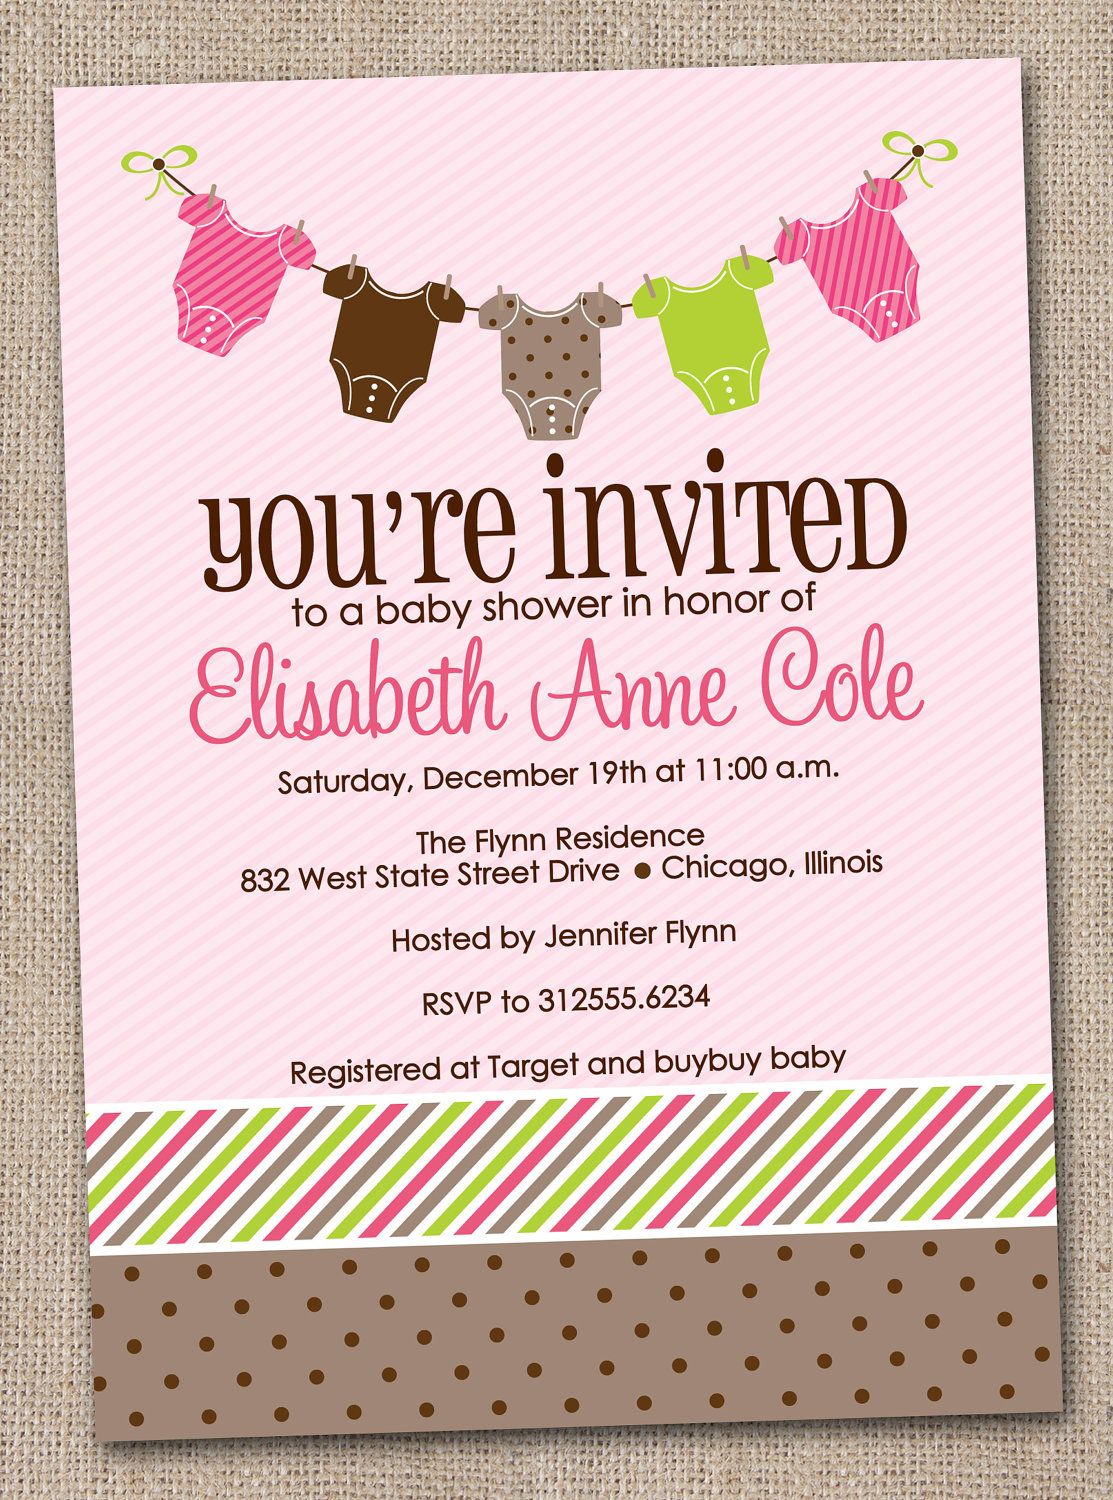 Full Size of Baby Shower:63+ Delightful Cheap Baby Shower Invitations Image Inspirations Cheap Baby Shower Invitations Princess Baby Shower Baby Shower Gift Baskets Baby Shower Party Themes Baby Shower Restaurants Baby Shower Venues Nyc Baby Shower Invitations Astonishing Baby Baby Shower